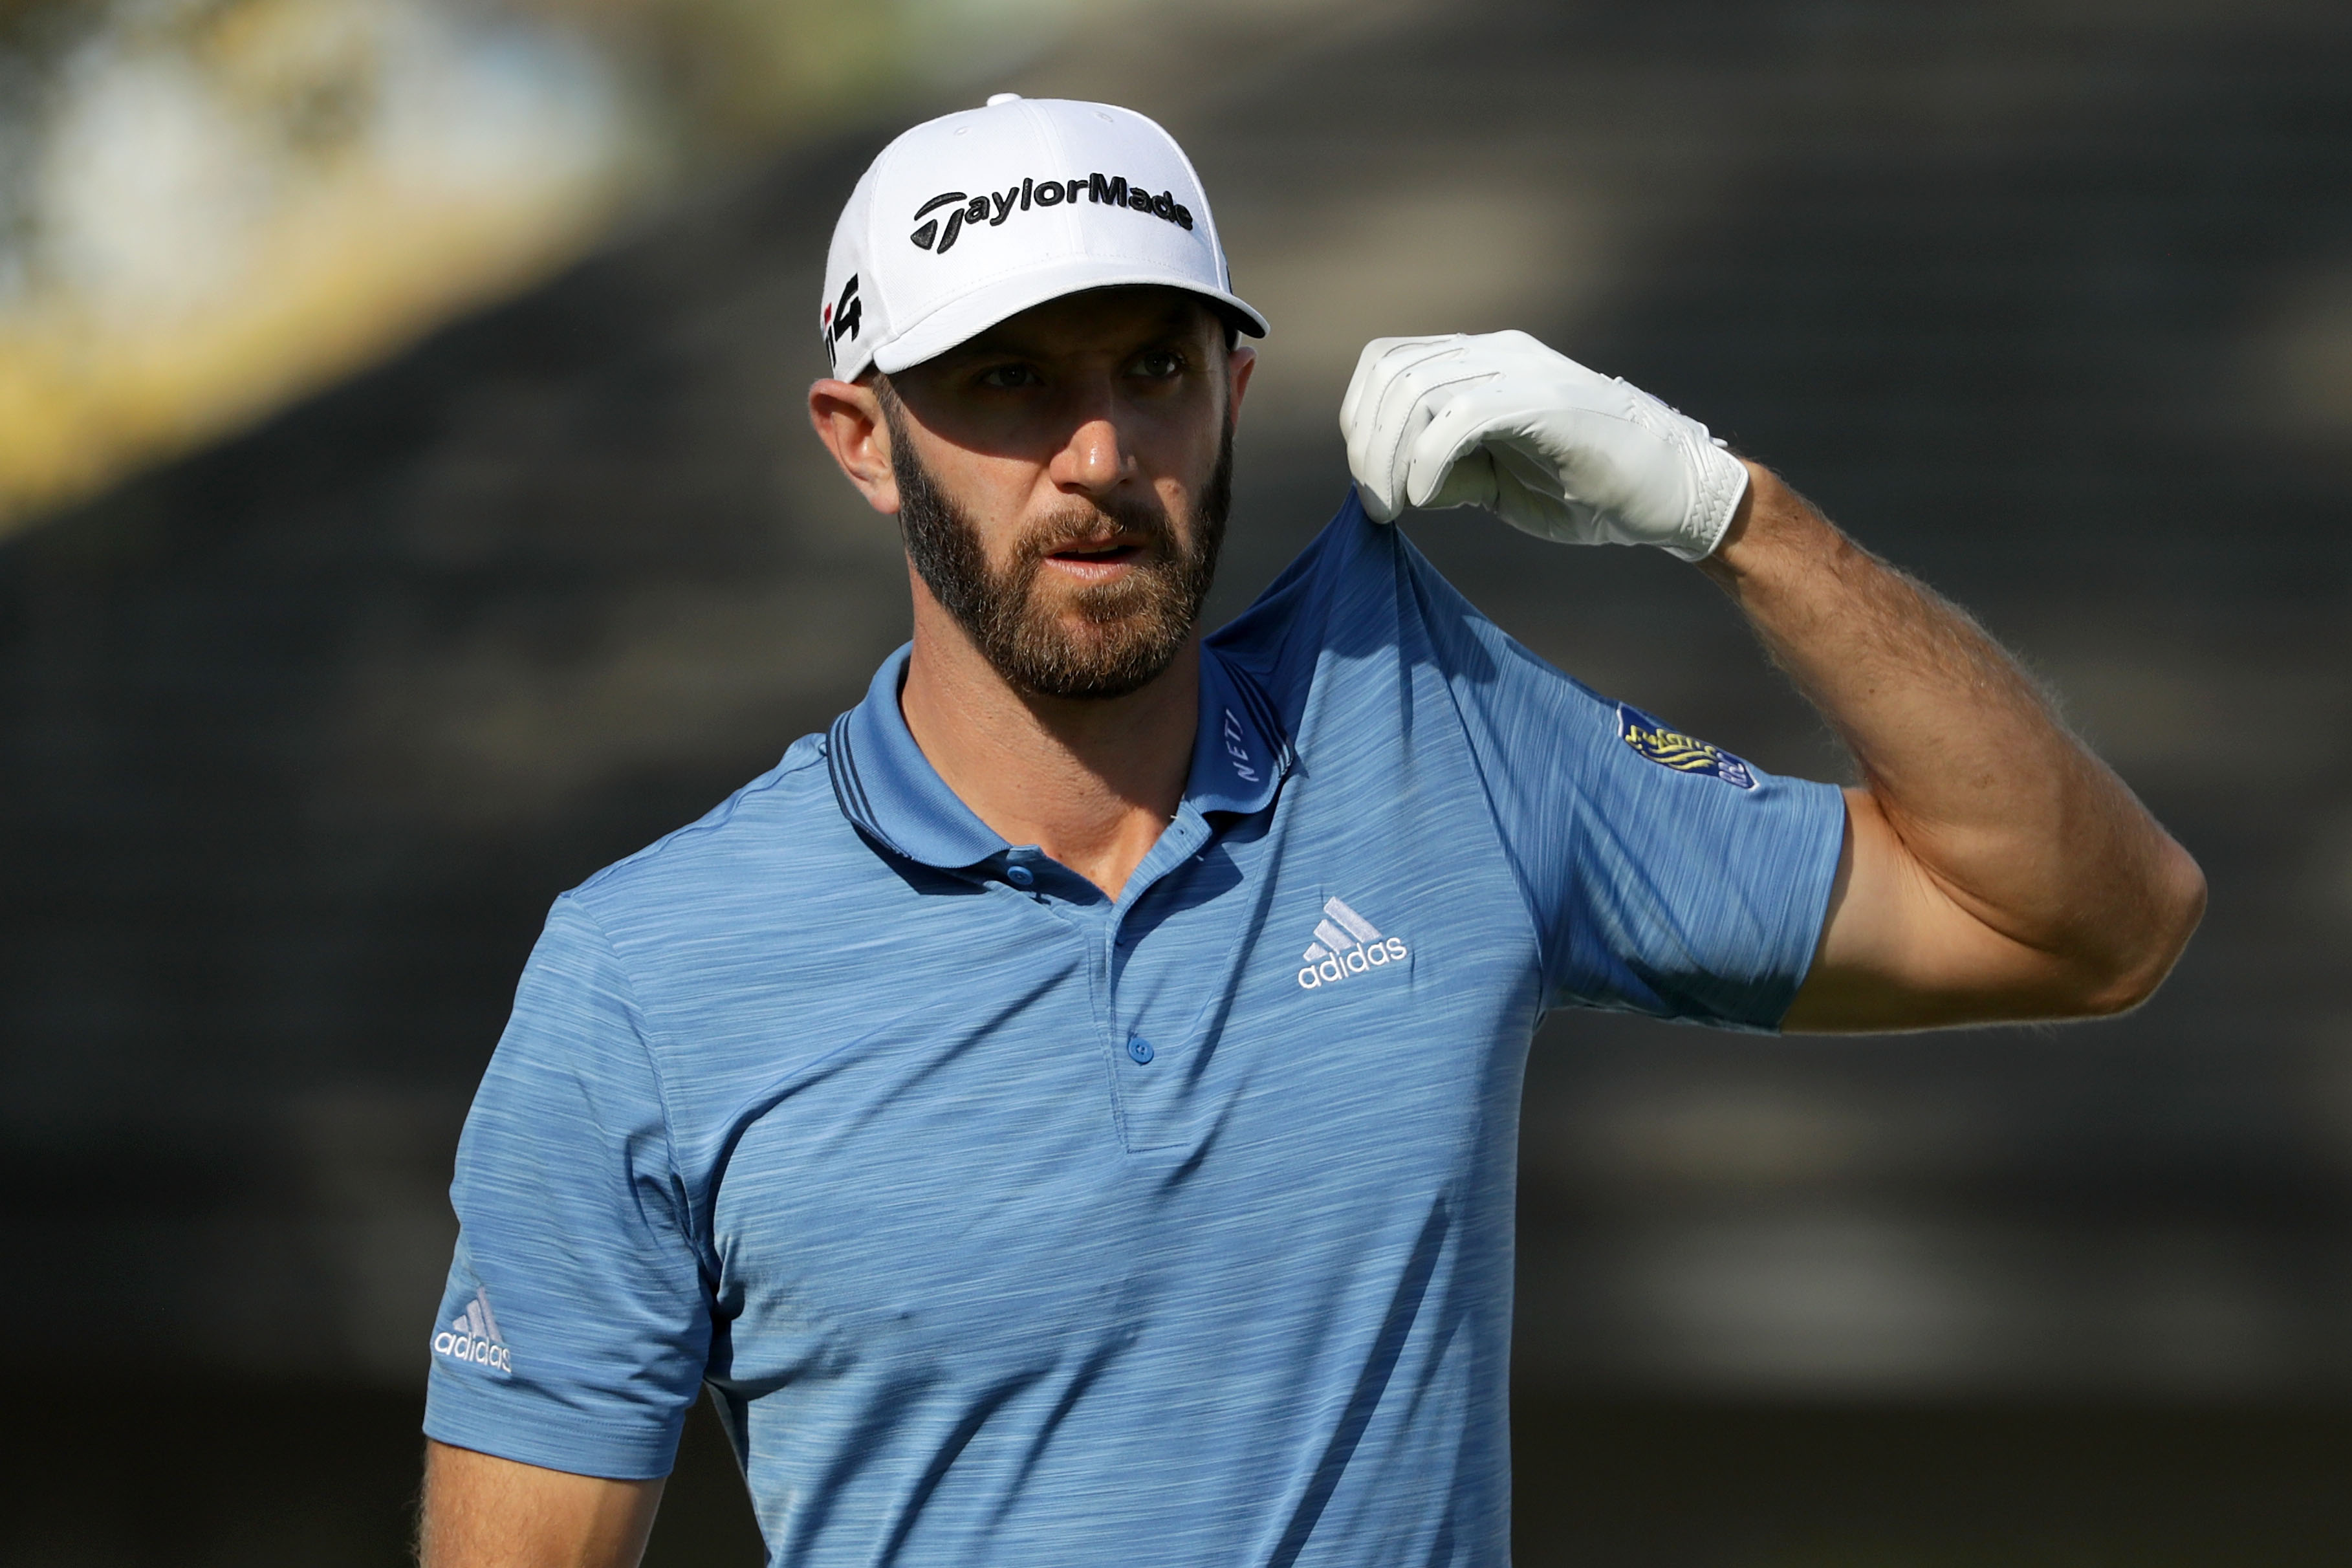 GolfMagic Style: adidas Golf apparel and shoes